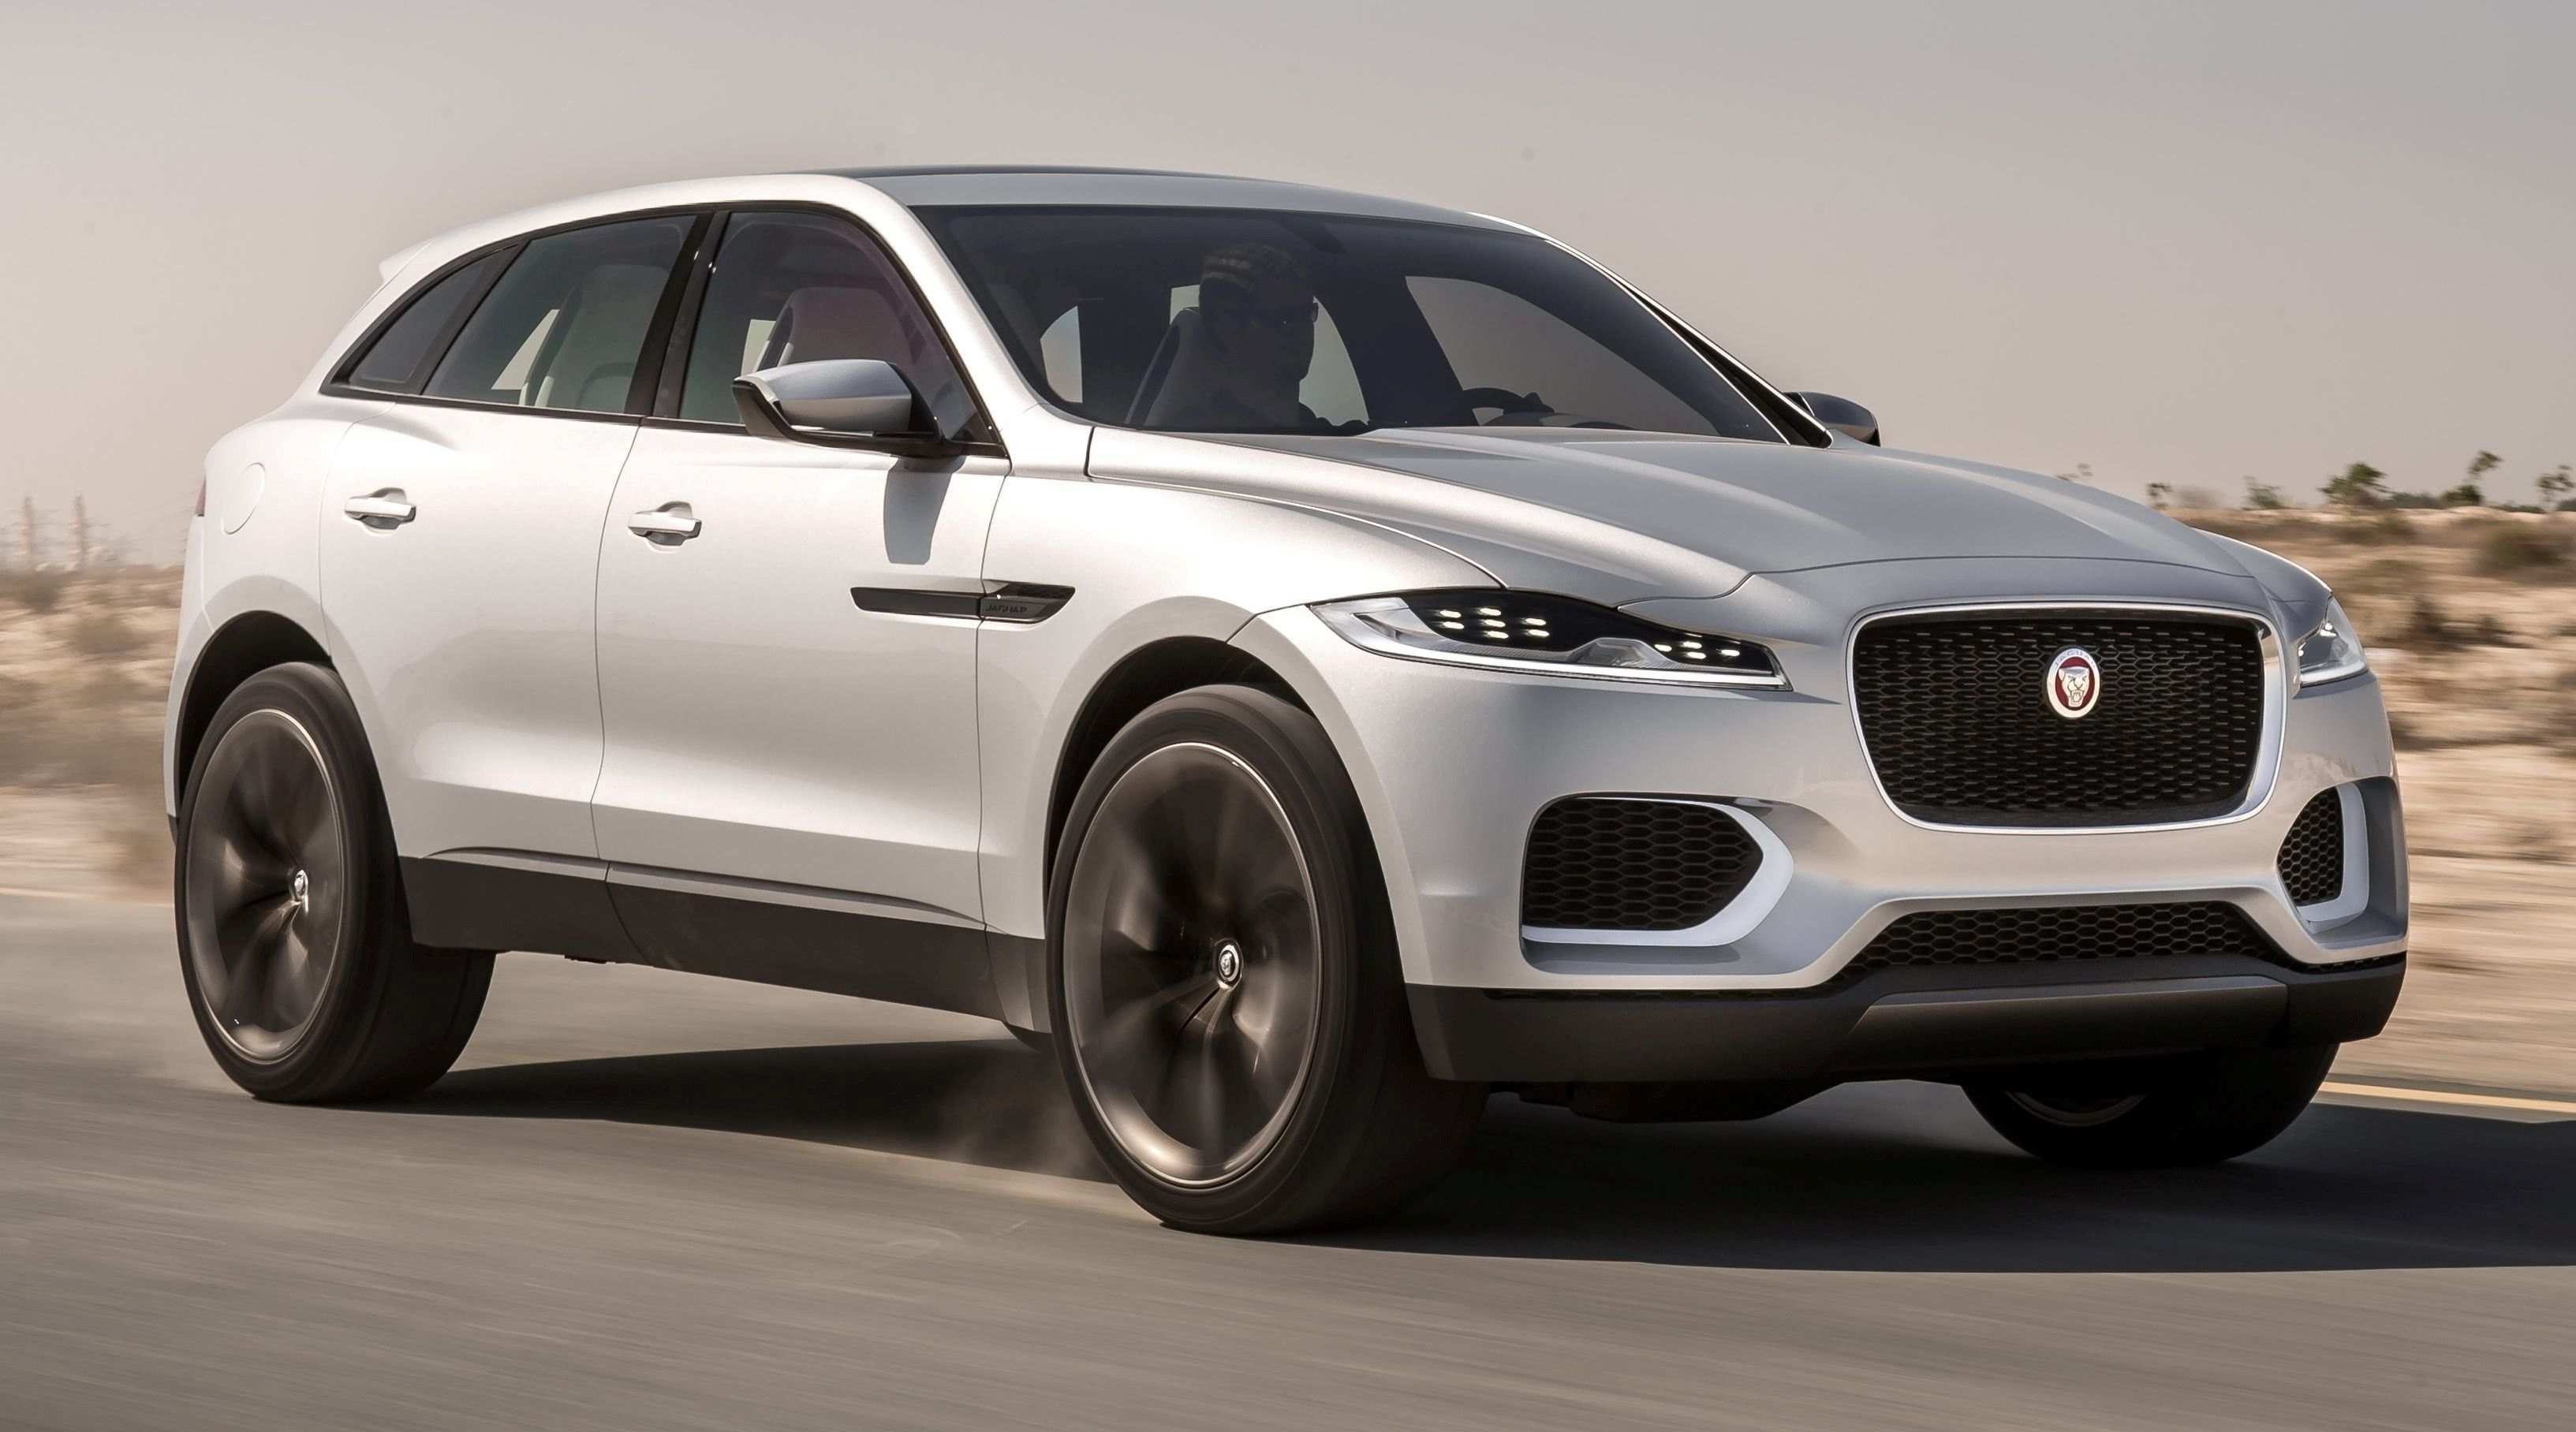 49 Concept of 2020 Jaguar Crossover Performance and New Engine by 2020 Jaguar Crossover